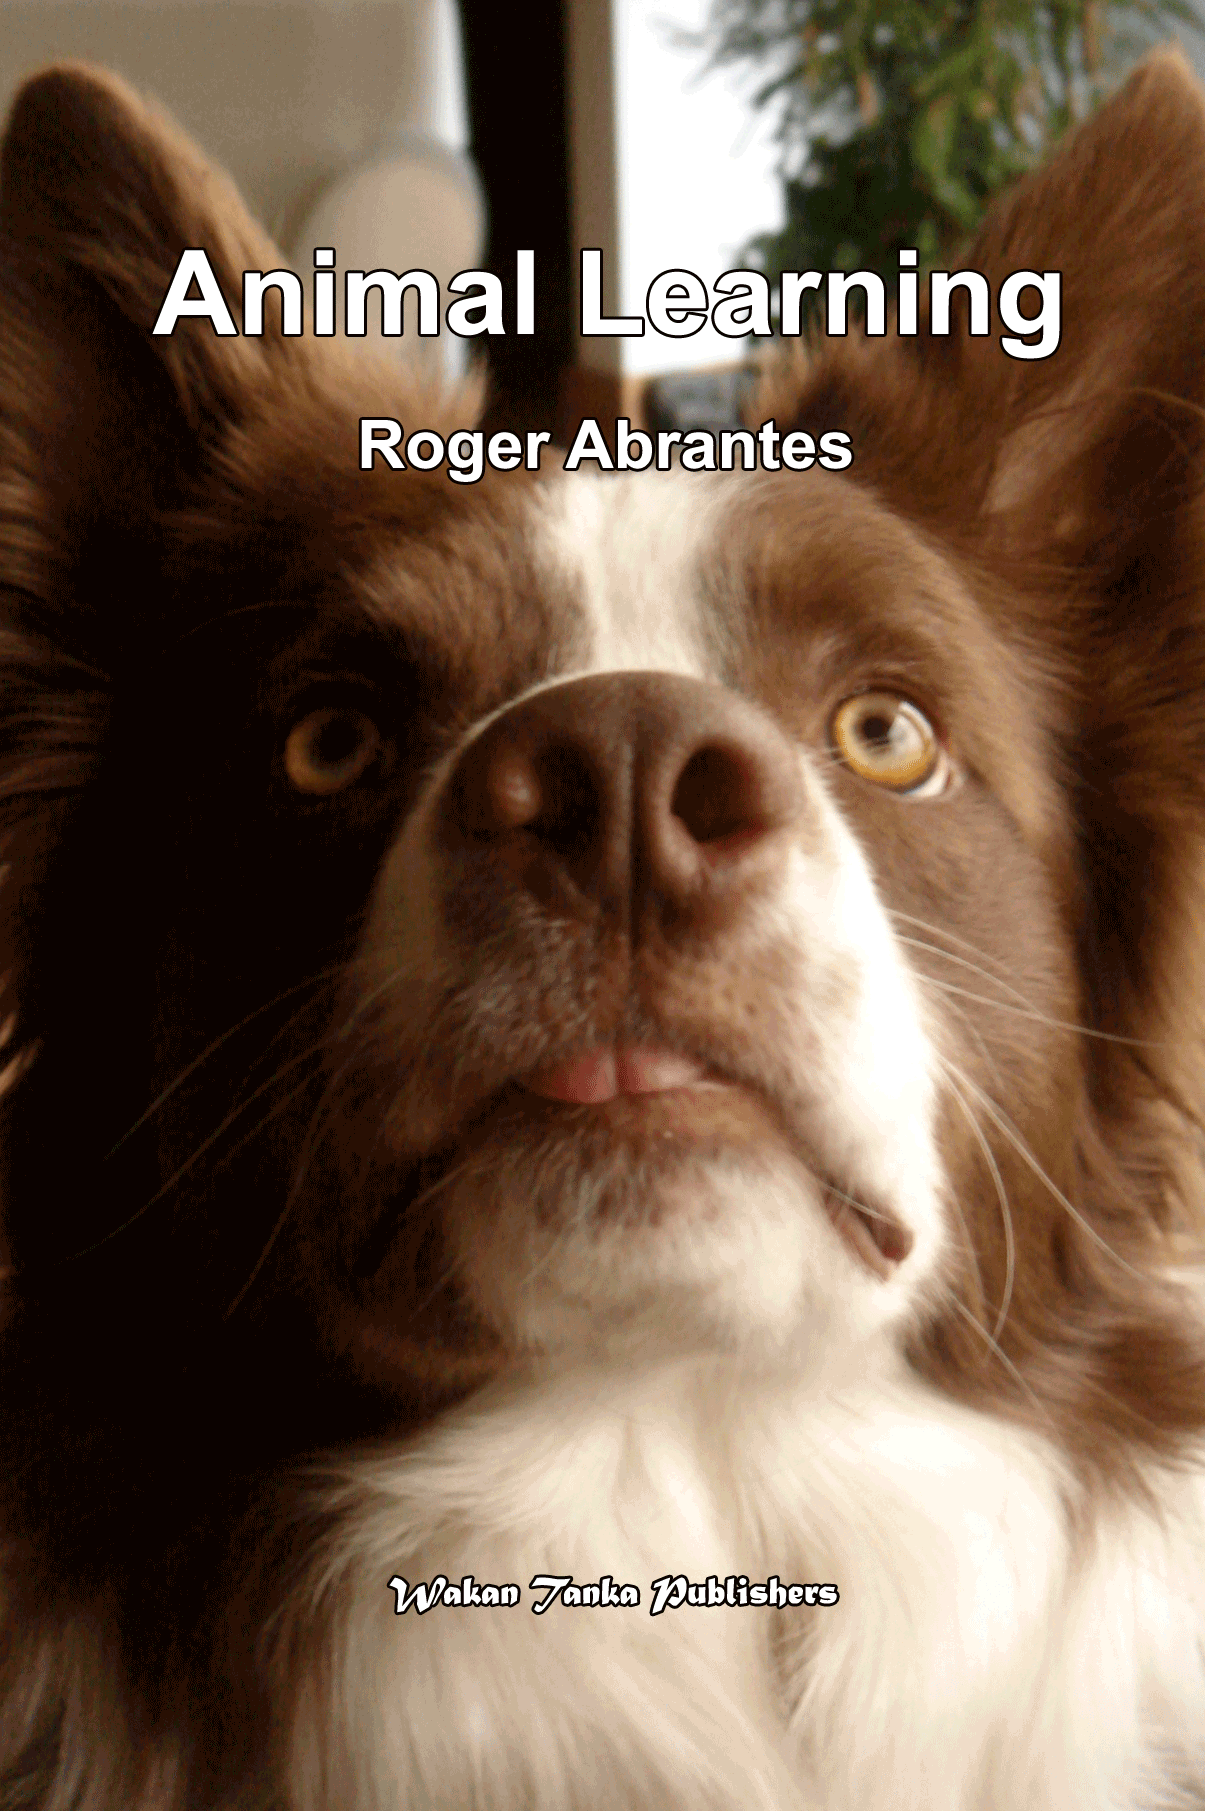 Animal Learning by Roger Abrantes